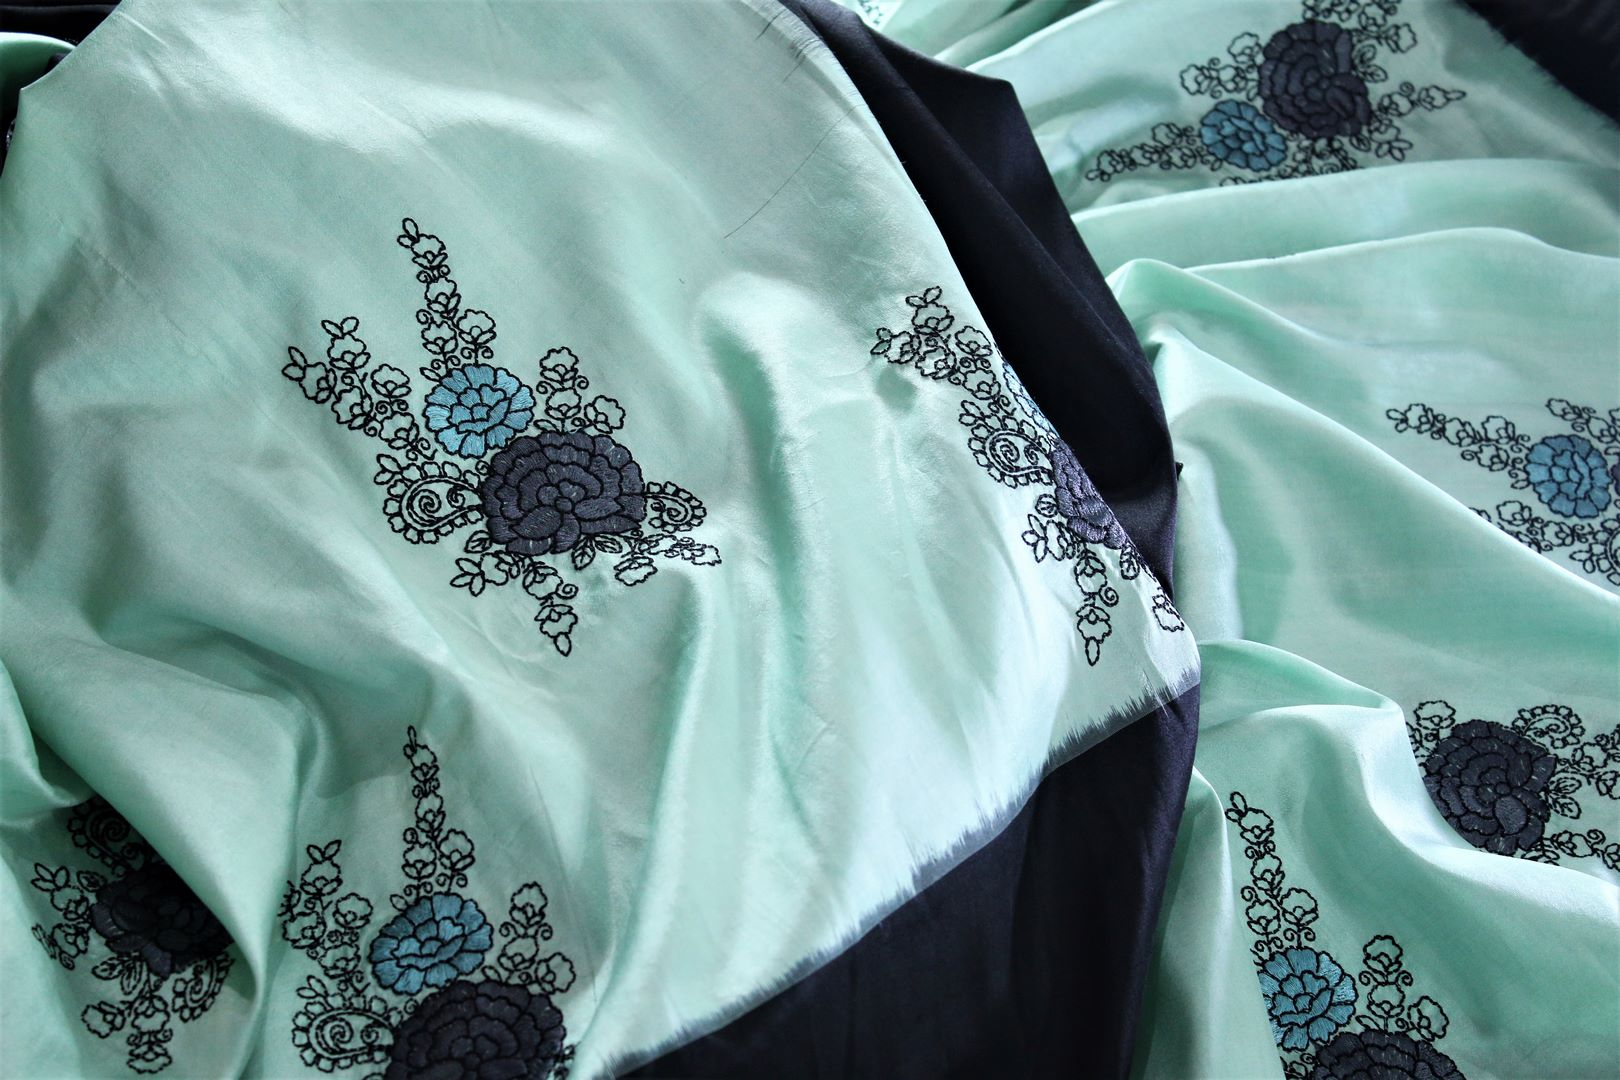 Buy beautiful pastel green ikkat silk saree with resham embroidery online in USA. Make an elegant fashion statement at parties with this alluring drape. Select from an exquisite range of handwoven sarees, designer sarees with blouses at Pure Elegance Indian Clothing store in USA.-details